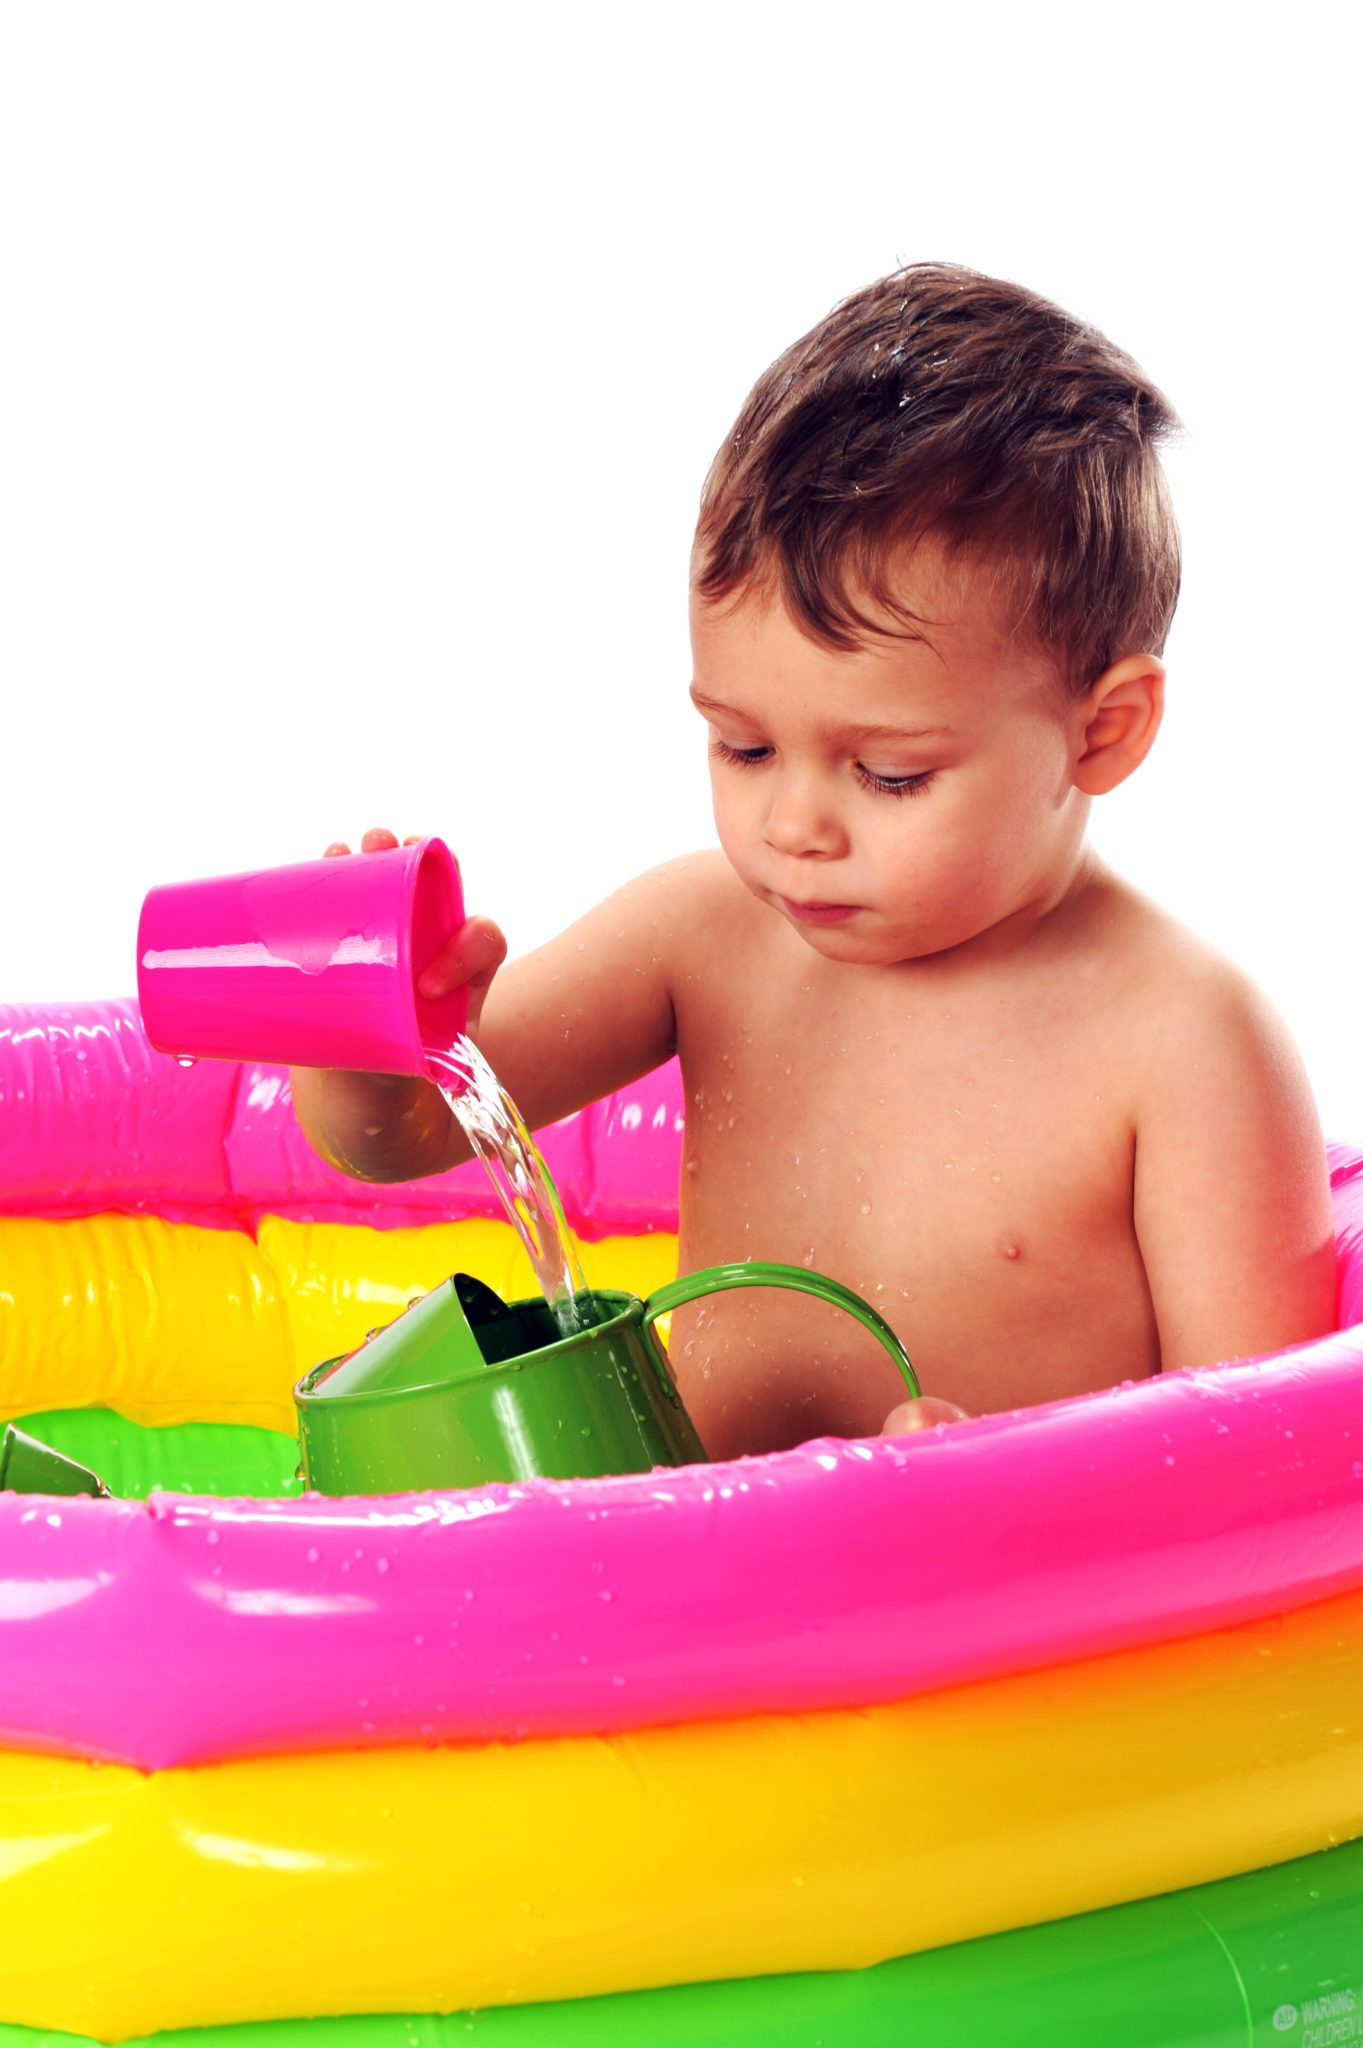 Child pouring water at a water table.